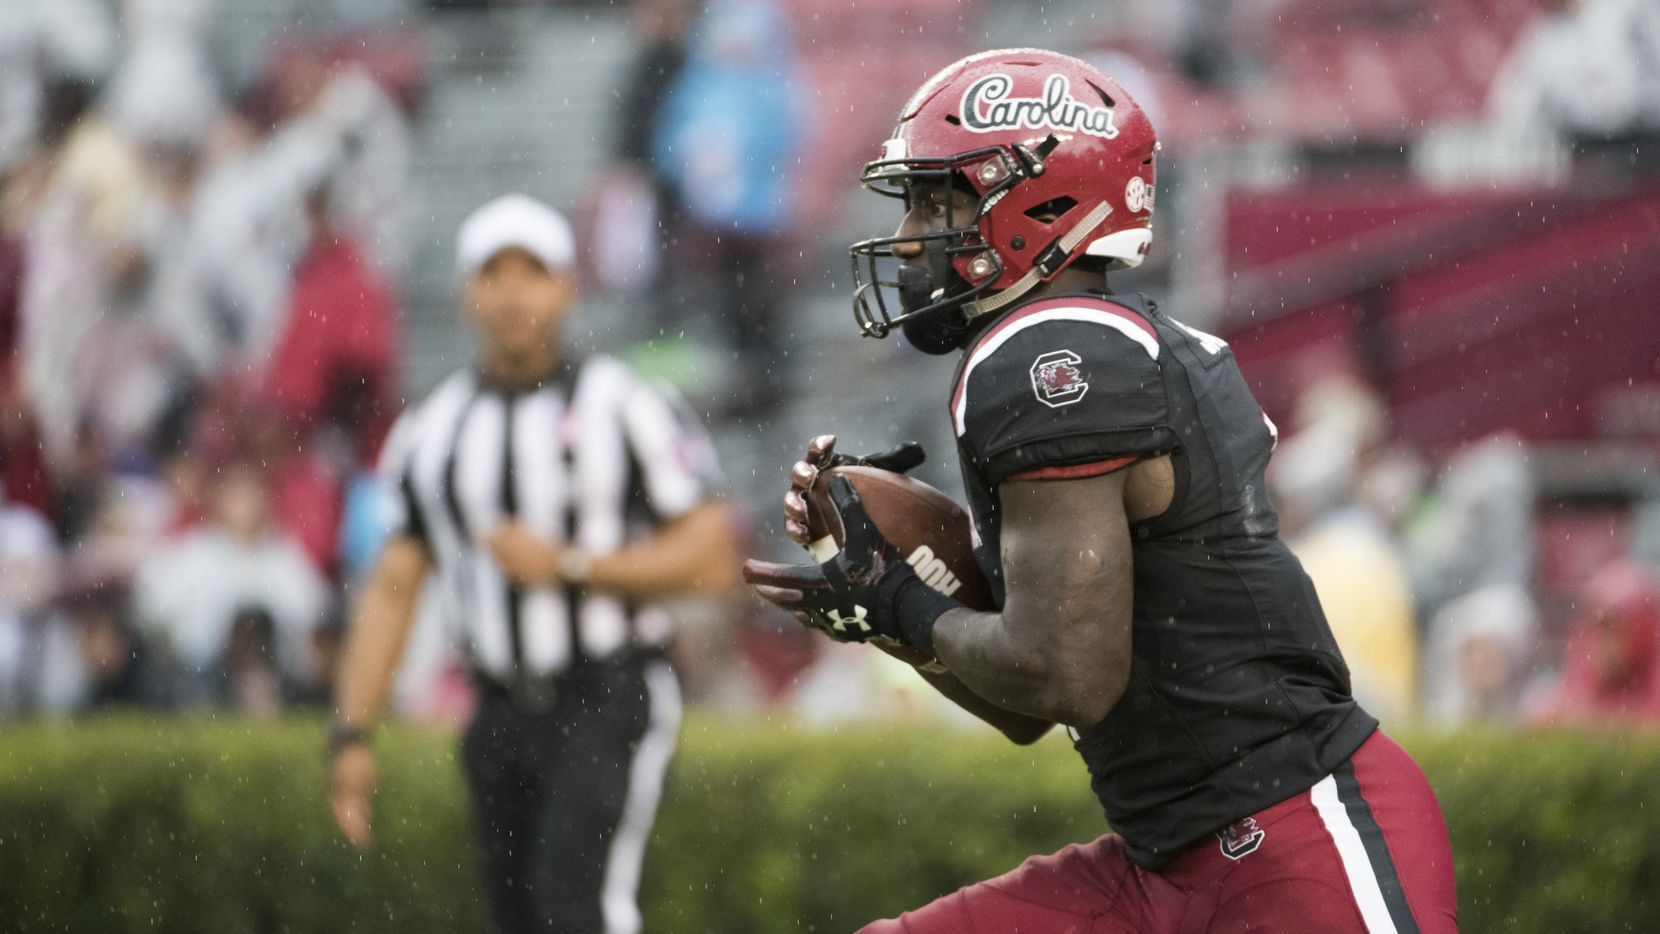 FILE - South Carolina wide receiver Deebo Samuel (1) returns a kick during an NCAA college football game against Akron Saturday, Dec. 1, 2018, in Columbia, S.C. South Carolina defeated Akron 28-3. (AP Photo/Sean Rayford)